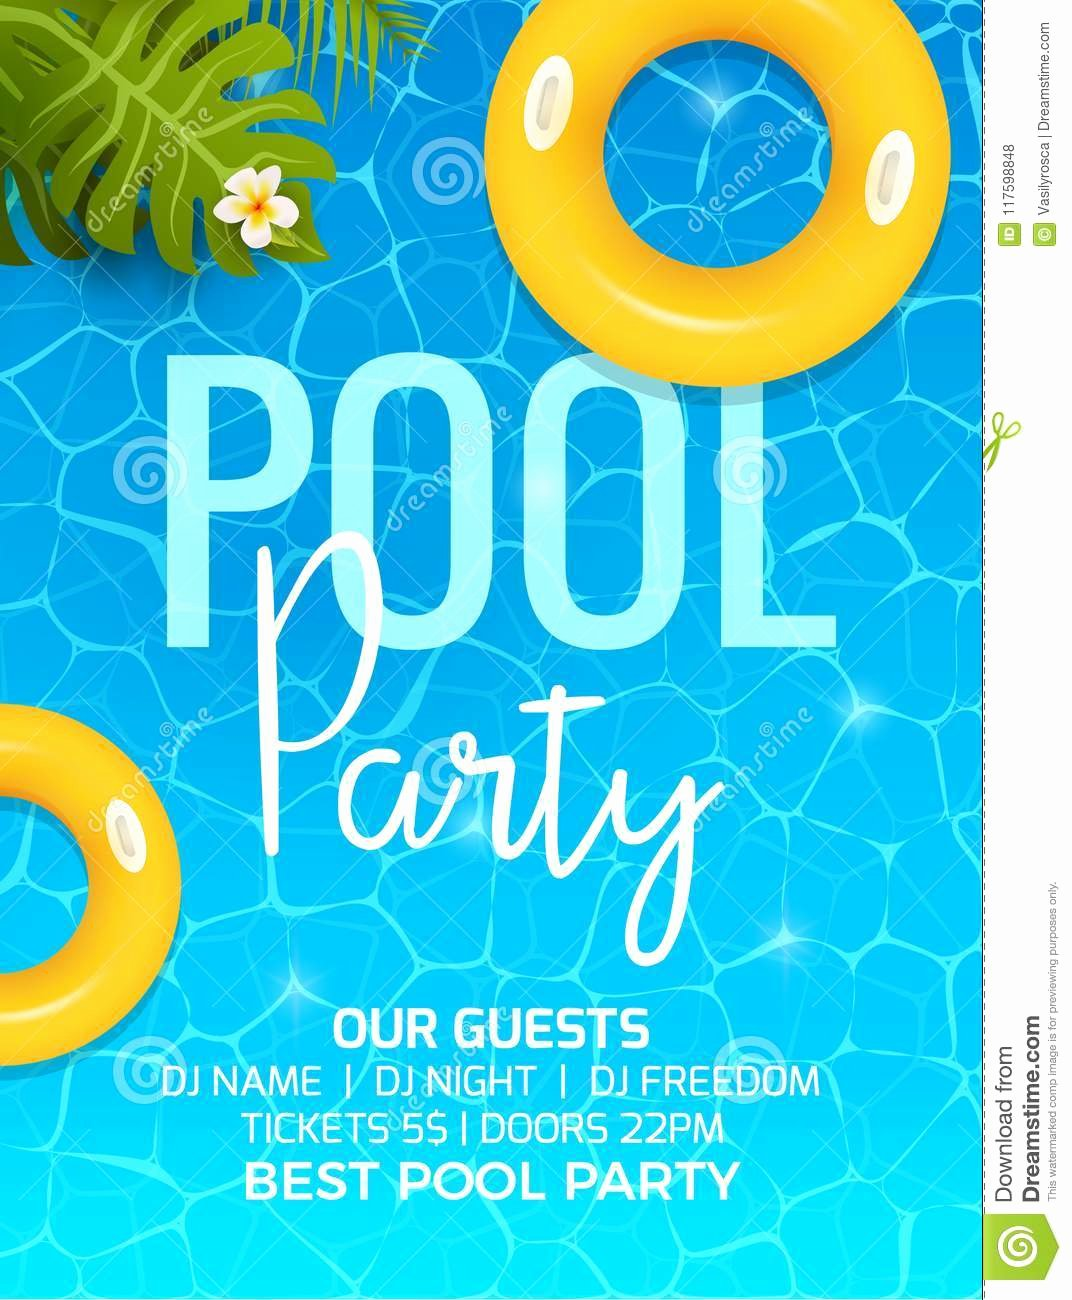 Pool Party Invite Template Luxury Pool Summer Party Invitation Template Invitation Pool